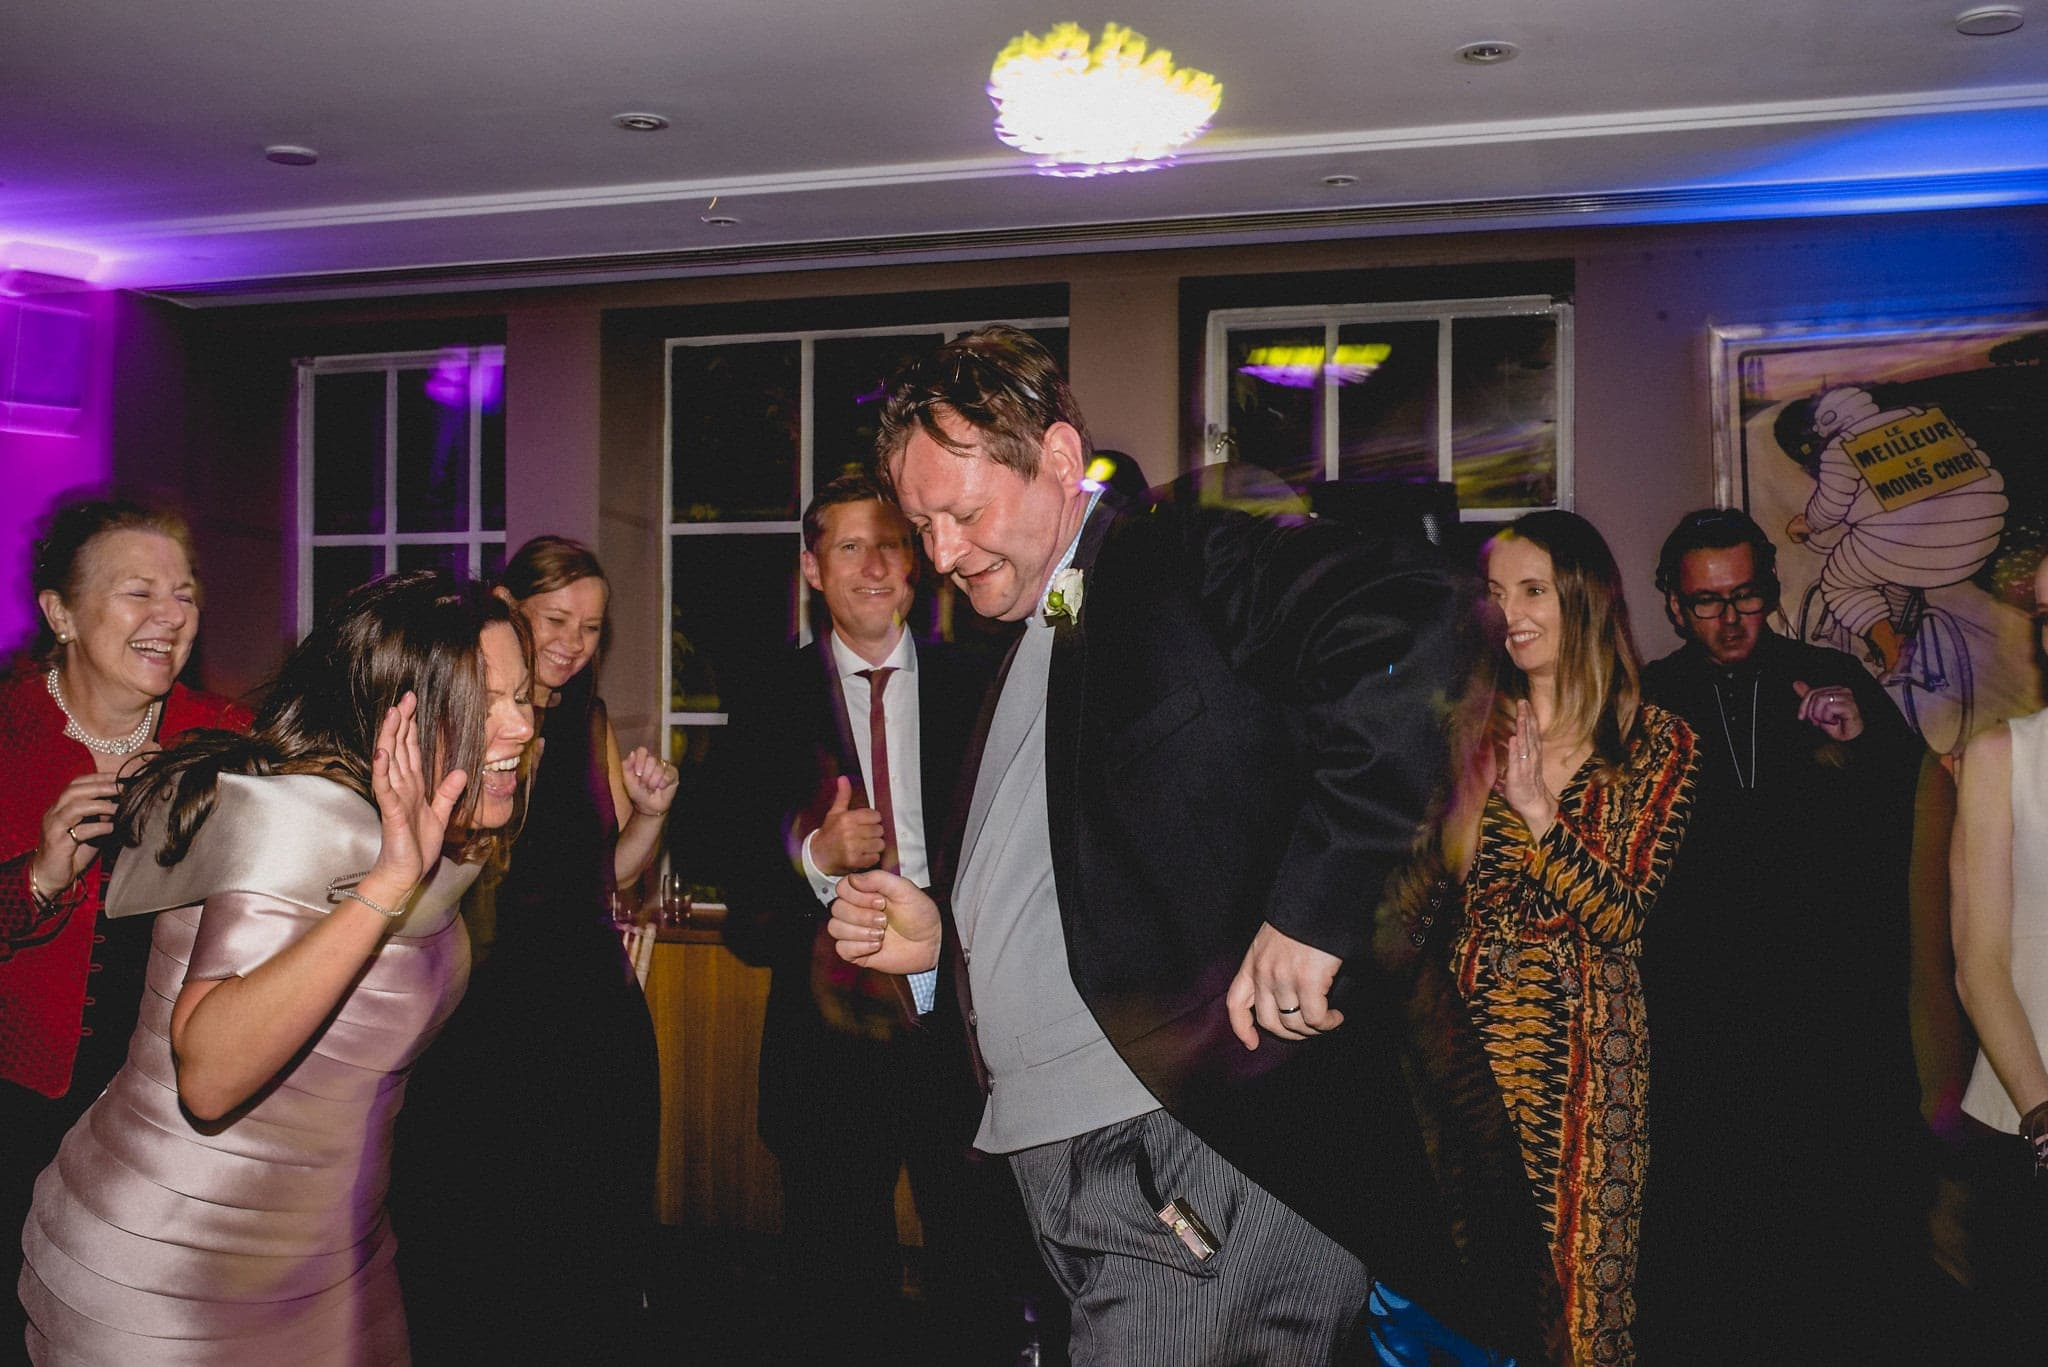 Bride and groom show off their dance moves